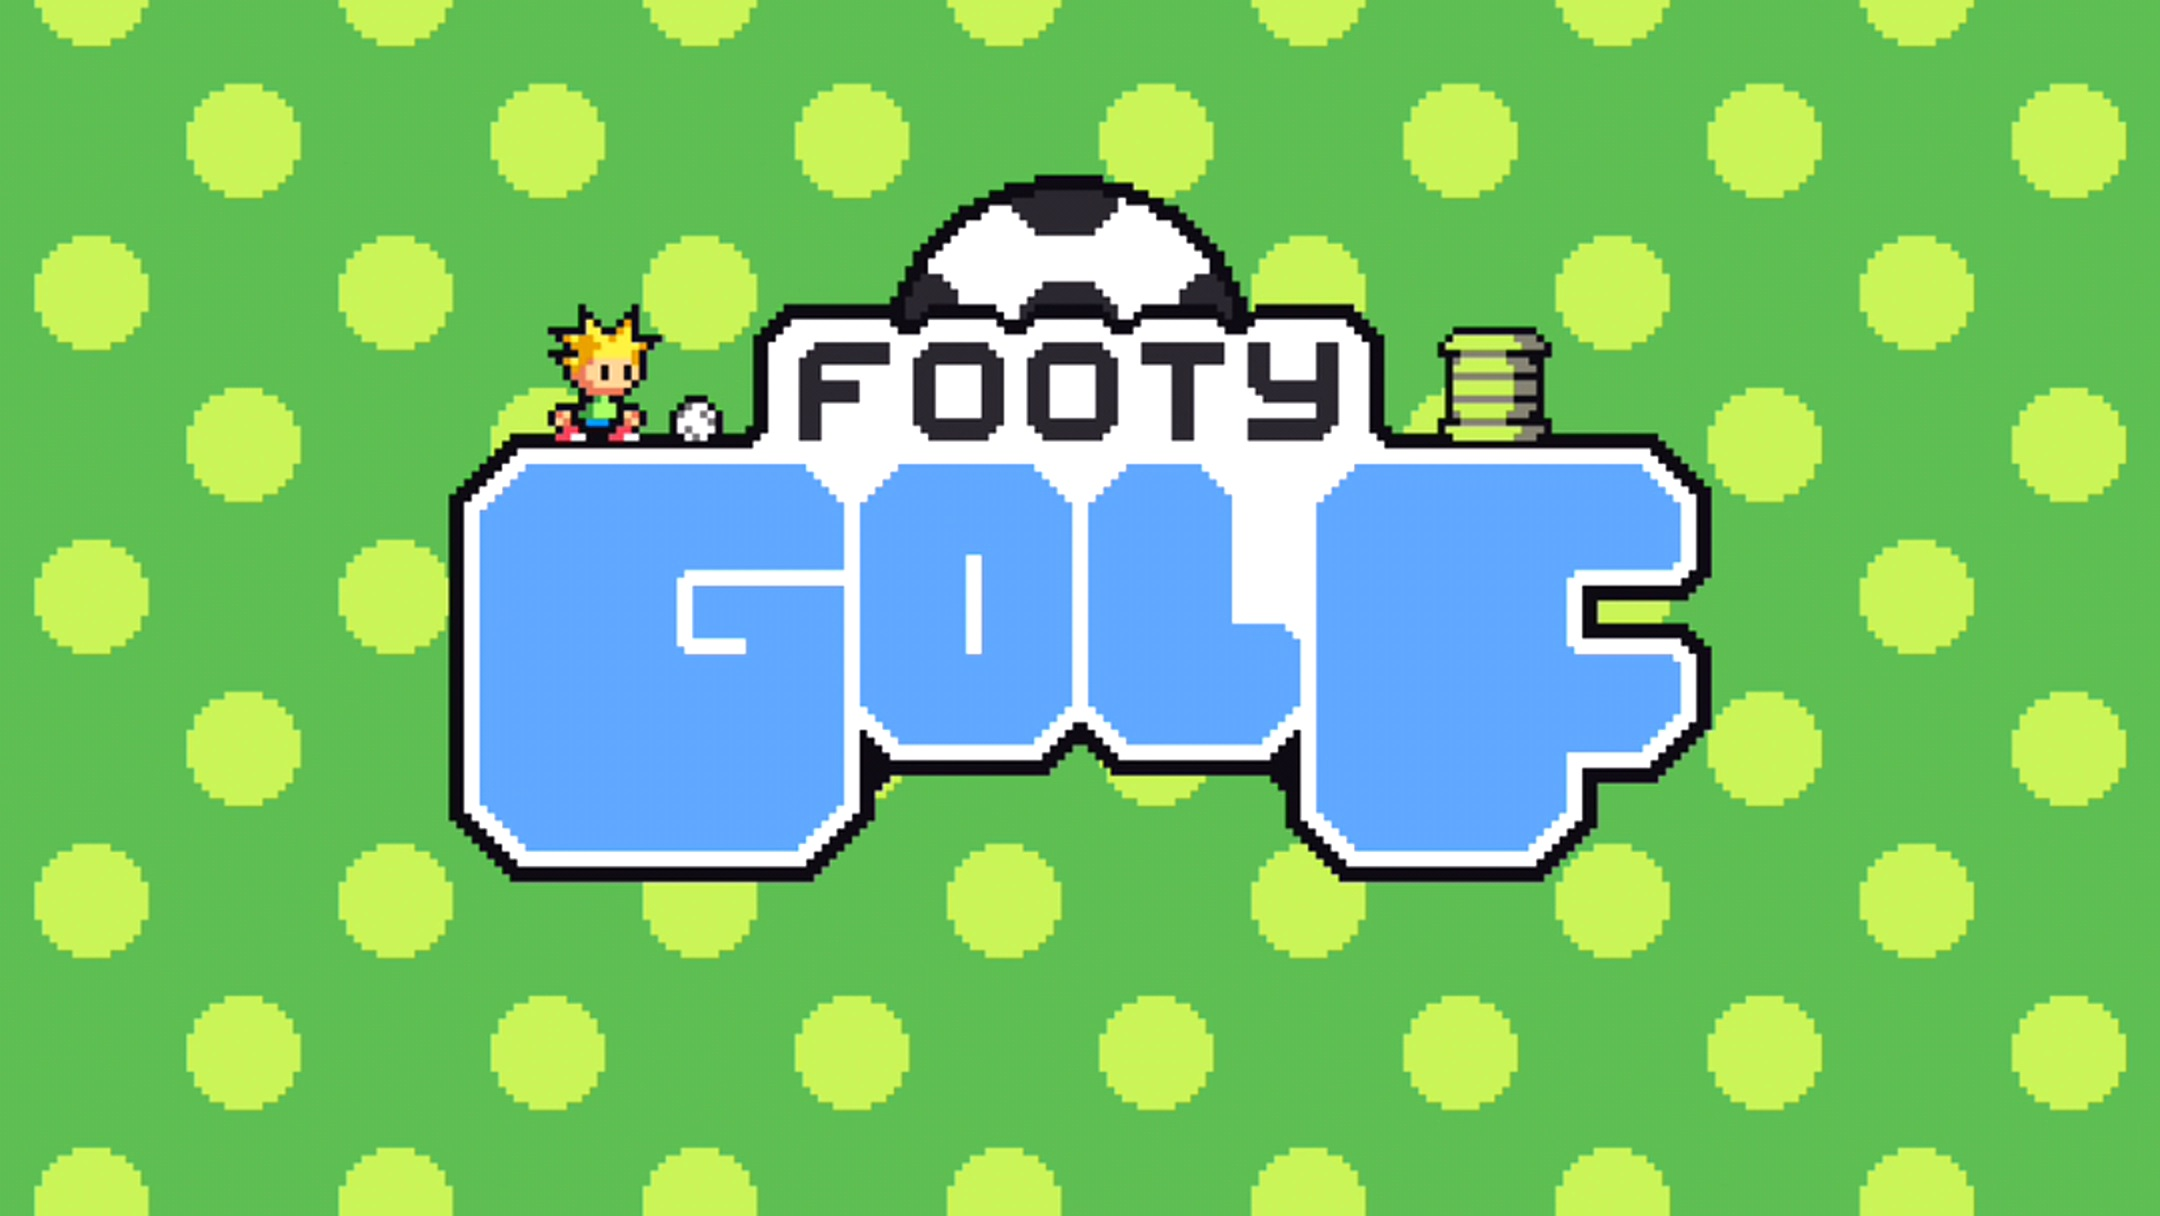 androidアプリ Footy Golf攻略スクリーンショット1